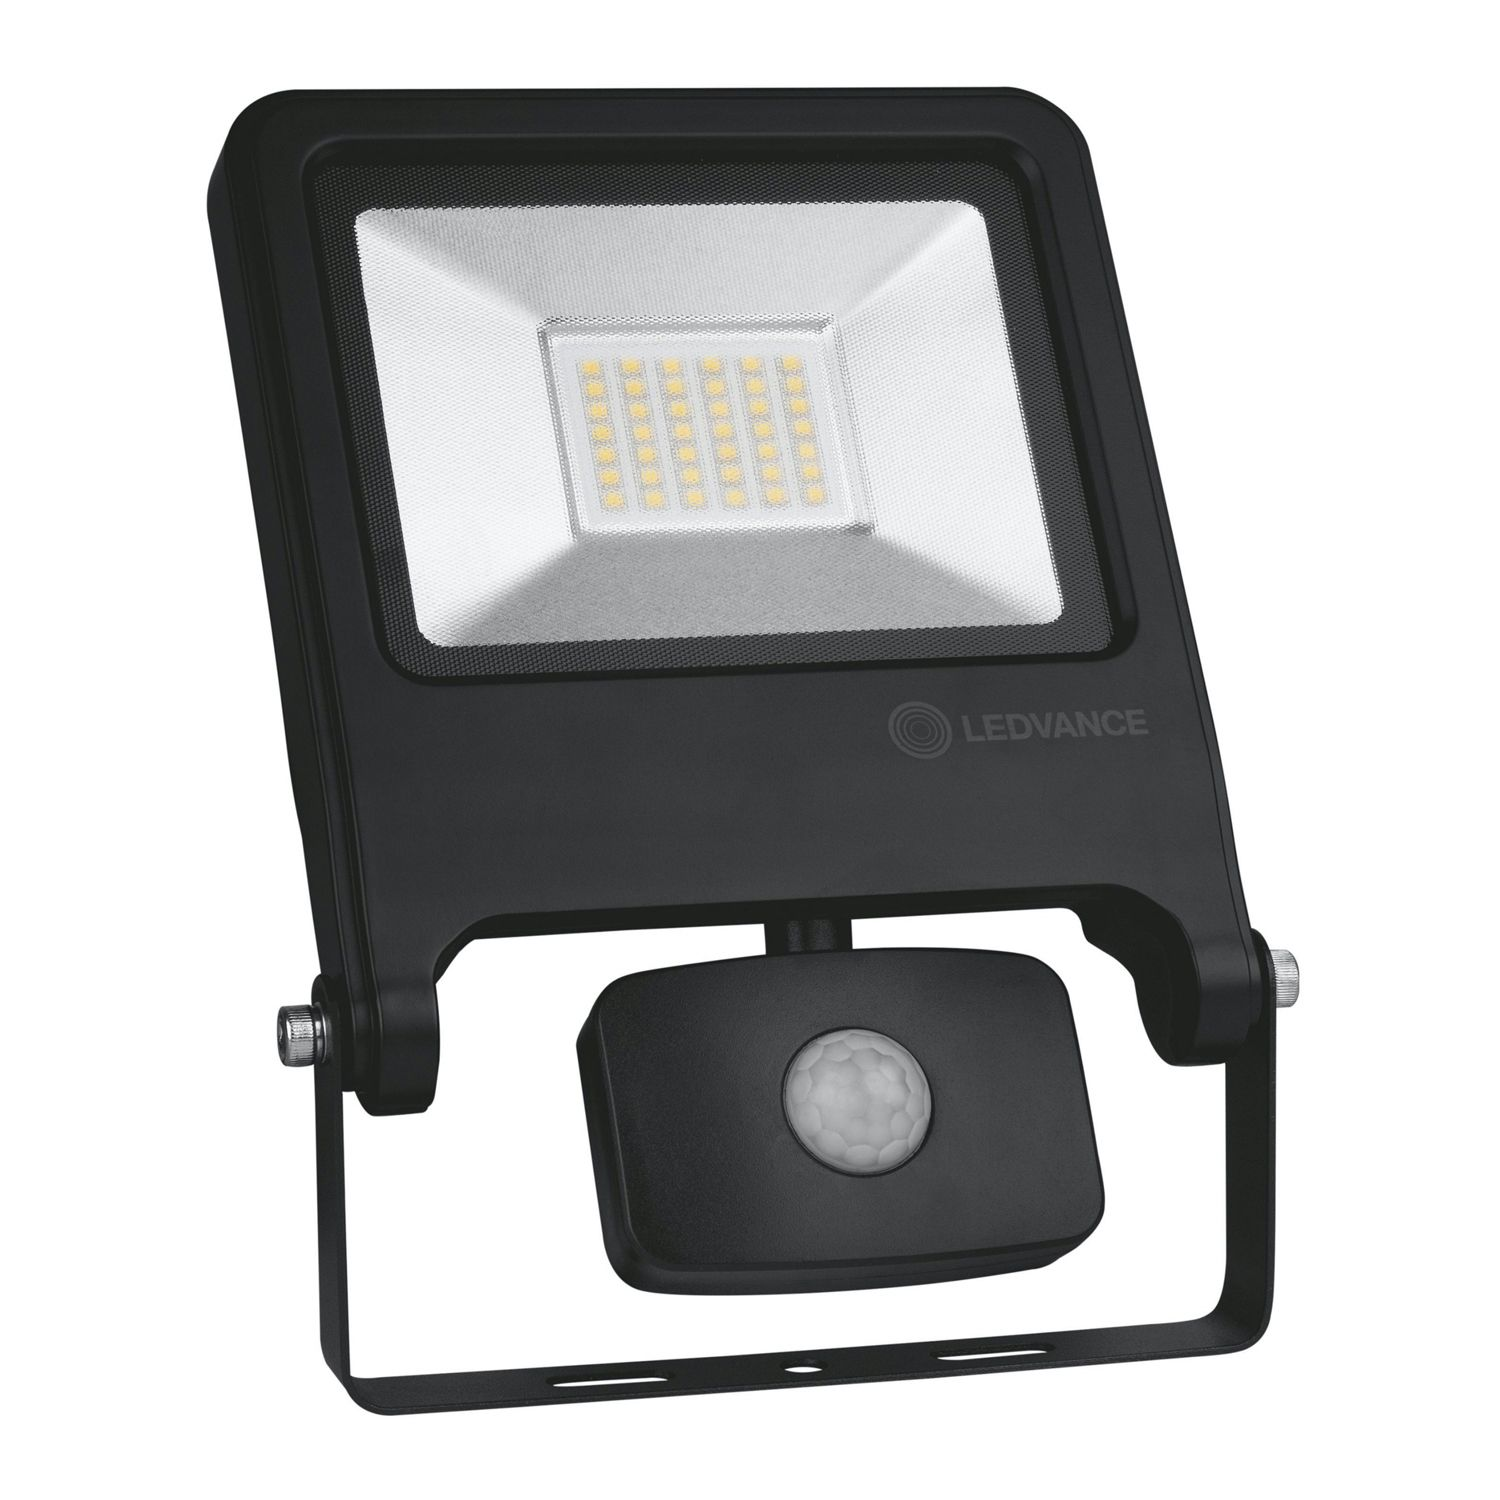 LEDVANCE LED projektør Value 30W 4000K 2700lm IP44 sort | med sensor